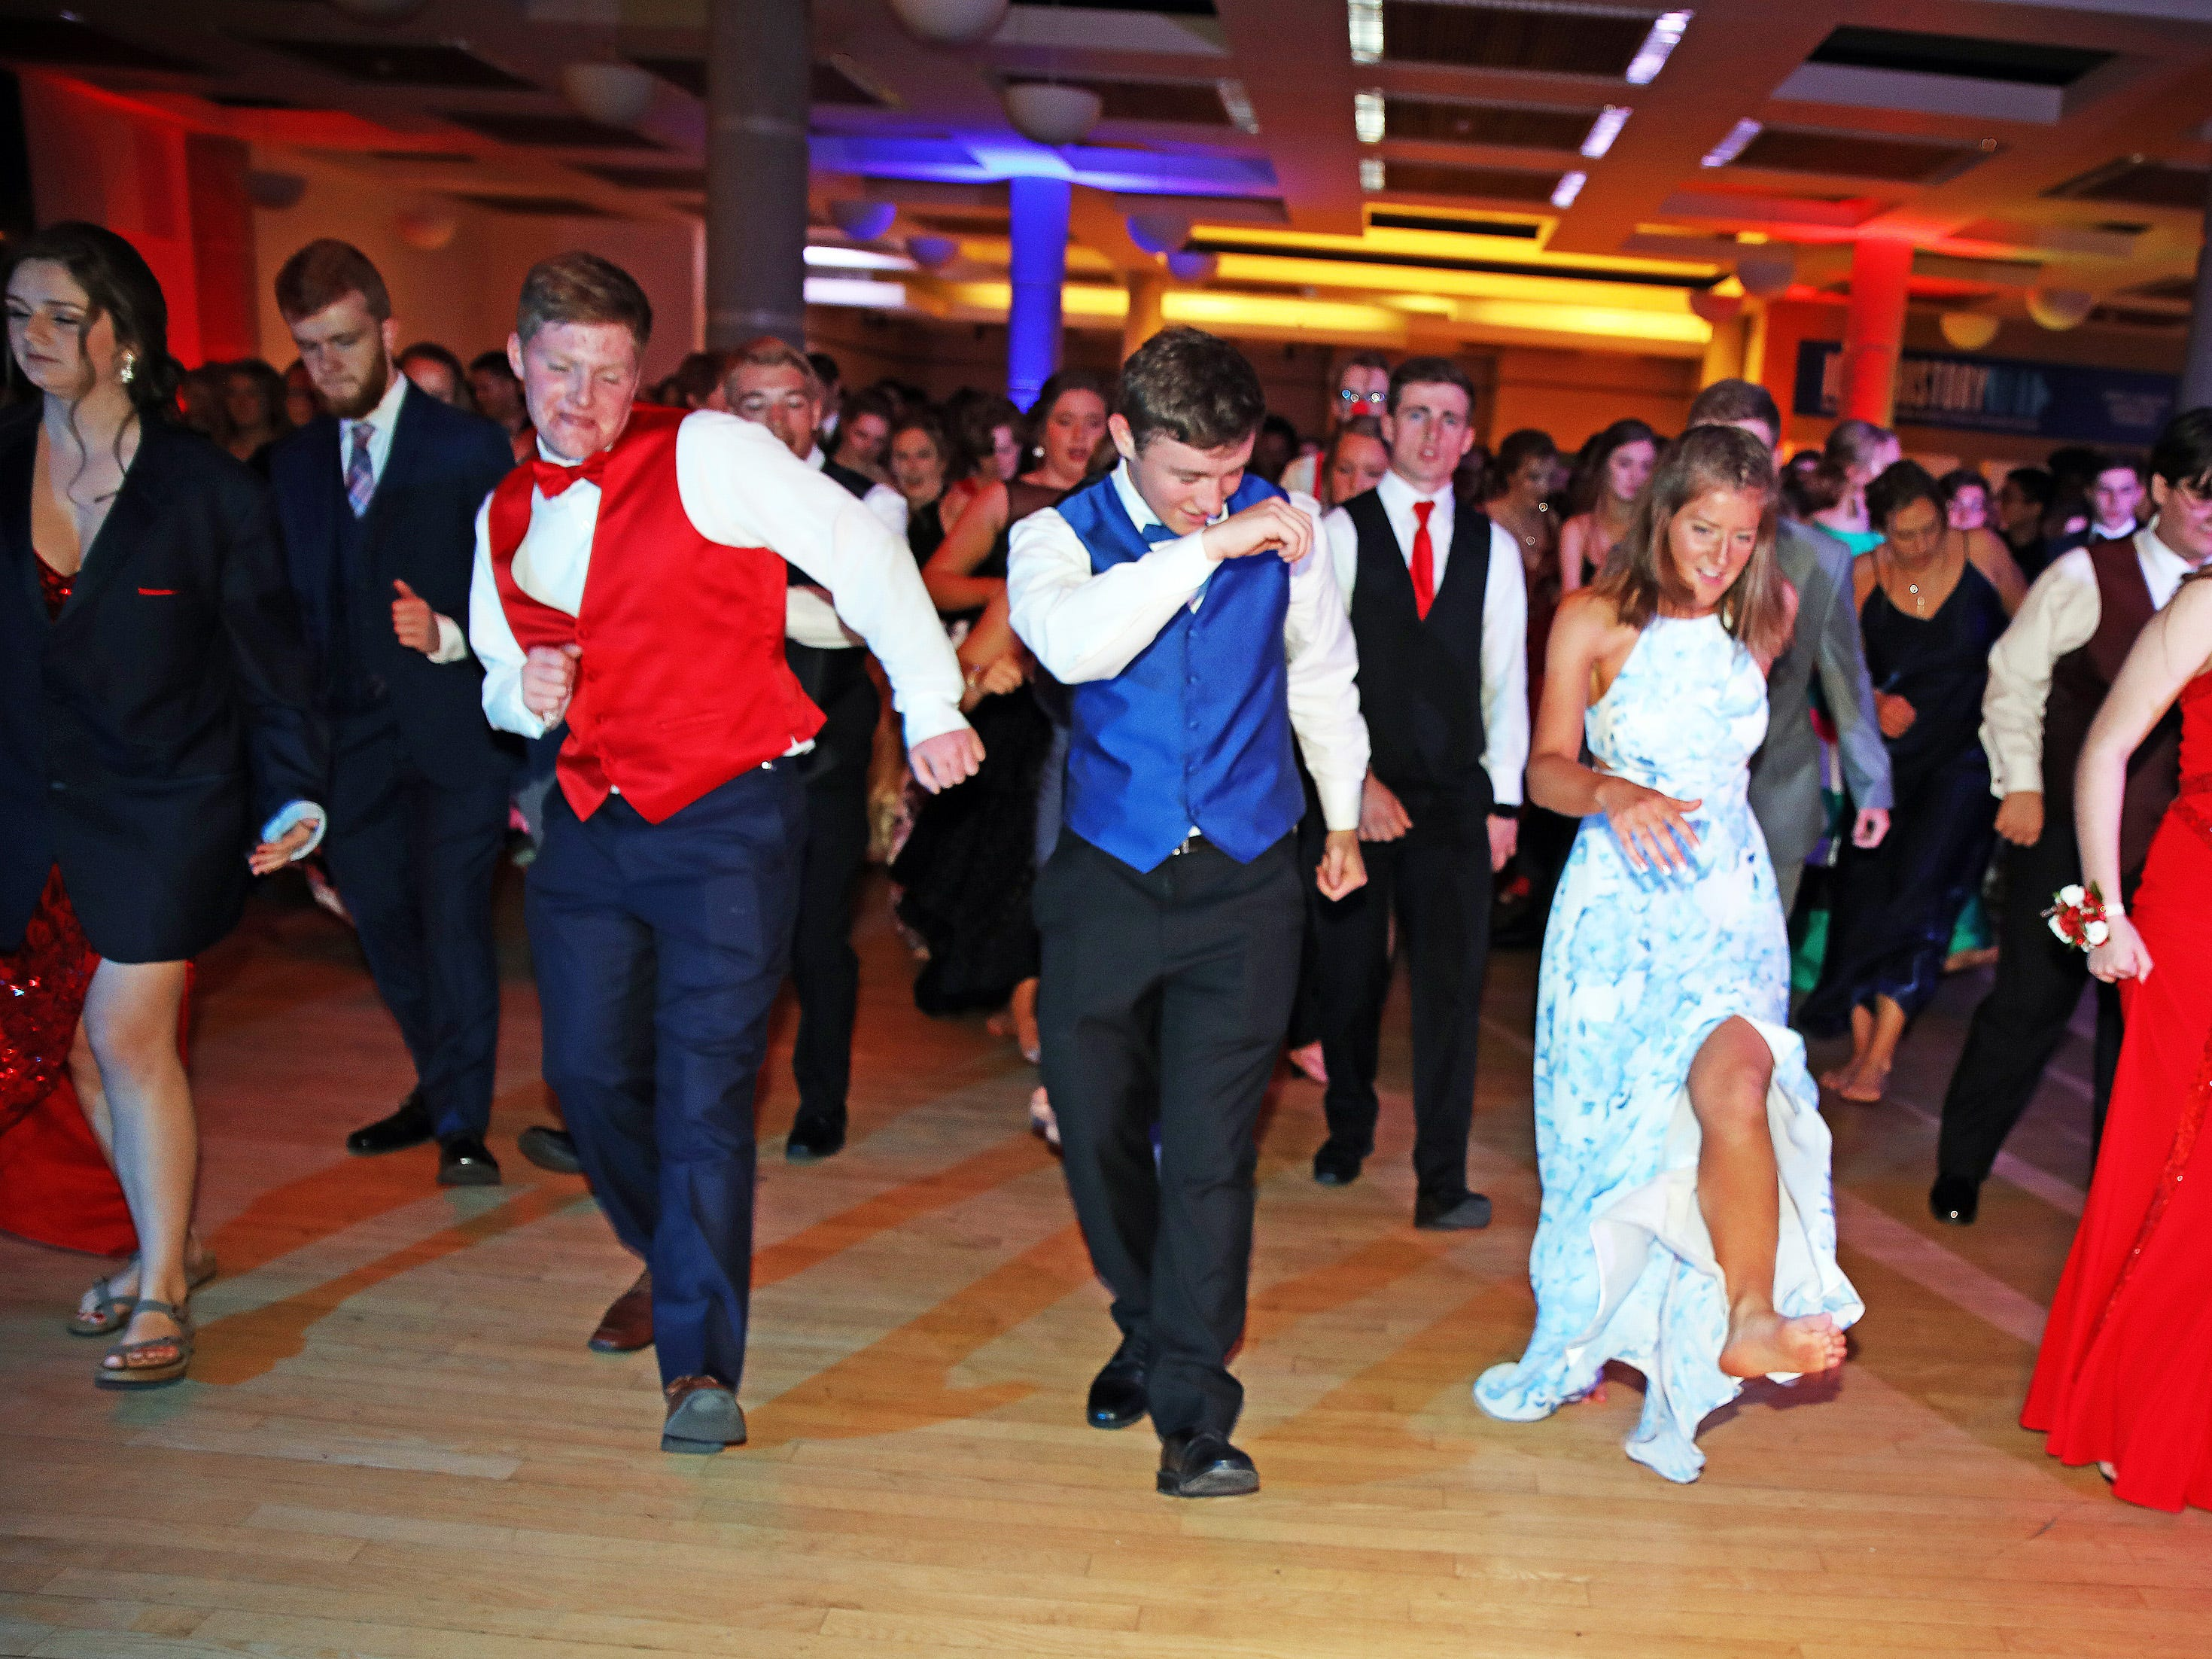 J-Hawk students hit the dance floor as the Cupid Shuffle plays during the circus-themed Urbandale High School Junior/Senior Prom Spectacular at the State Historical Building in Des Moines on Saturday, April 11, 2019.  The post-prom event is held at school right after the dance from 11 p.m. to 4:30 a.m. with food, prizes, a hypnotist, inflatables, and casino games.